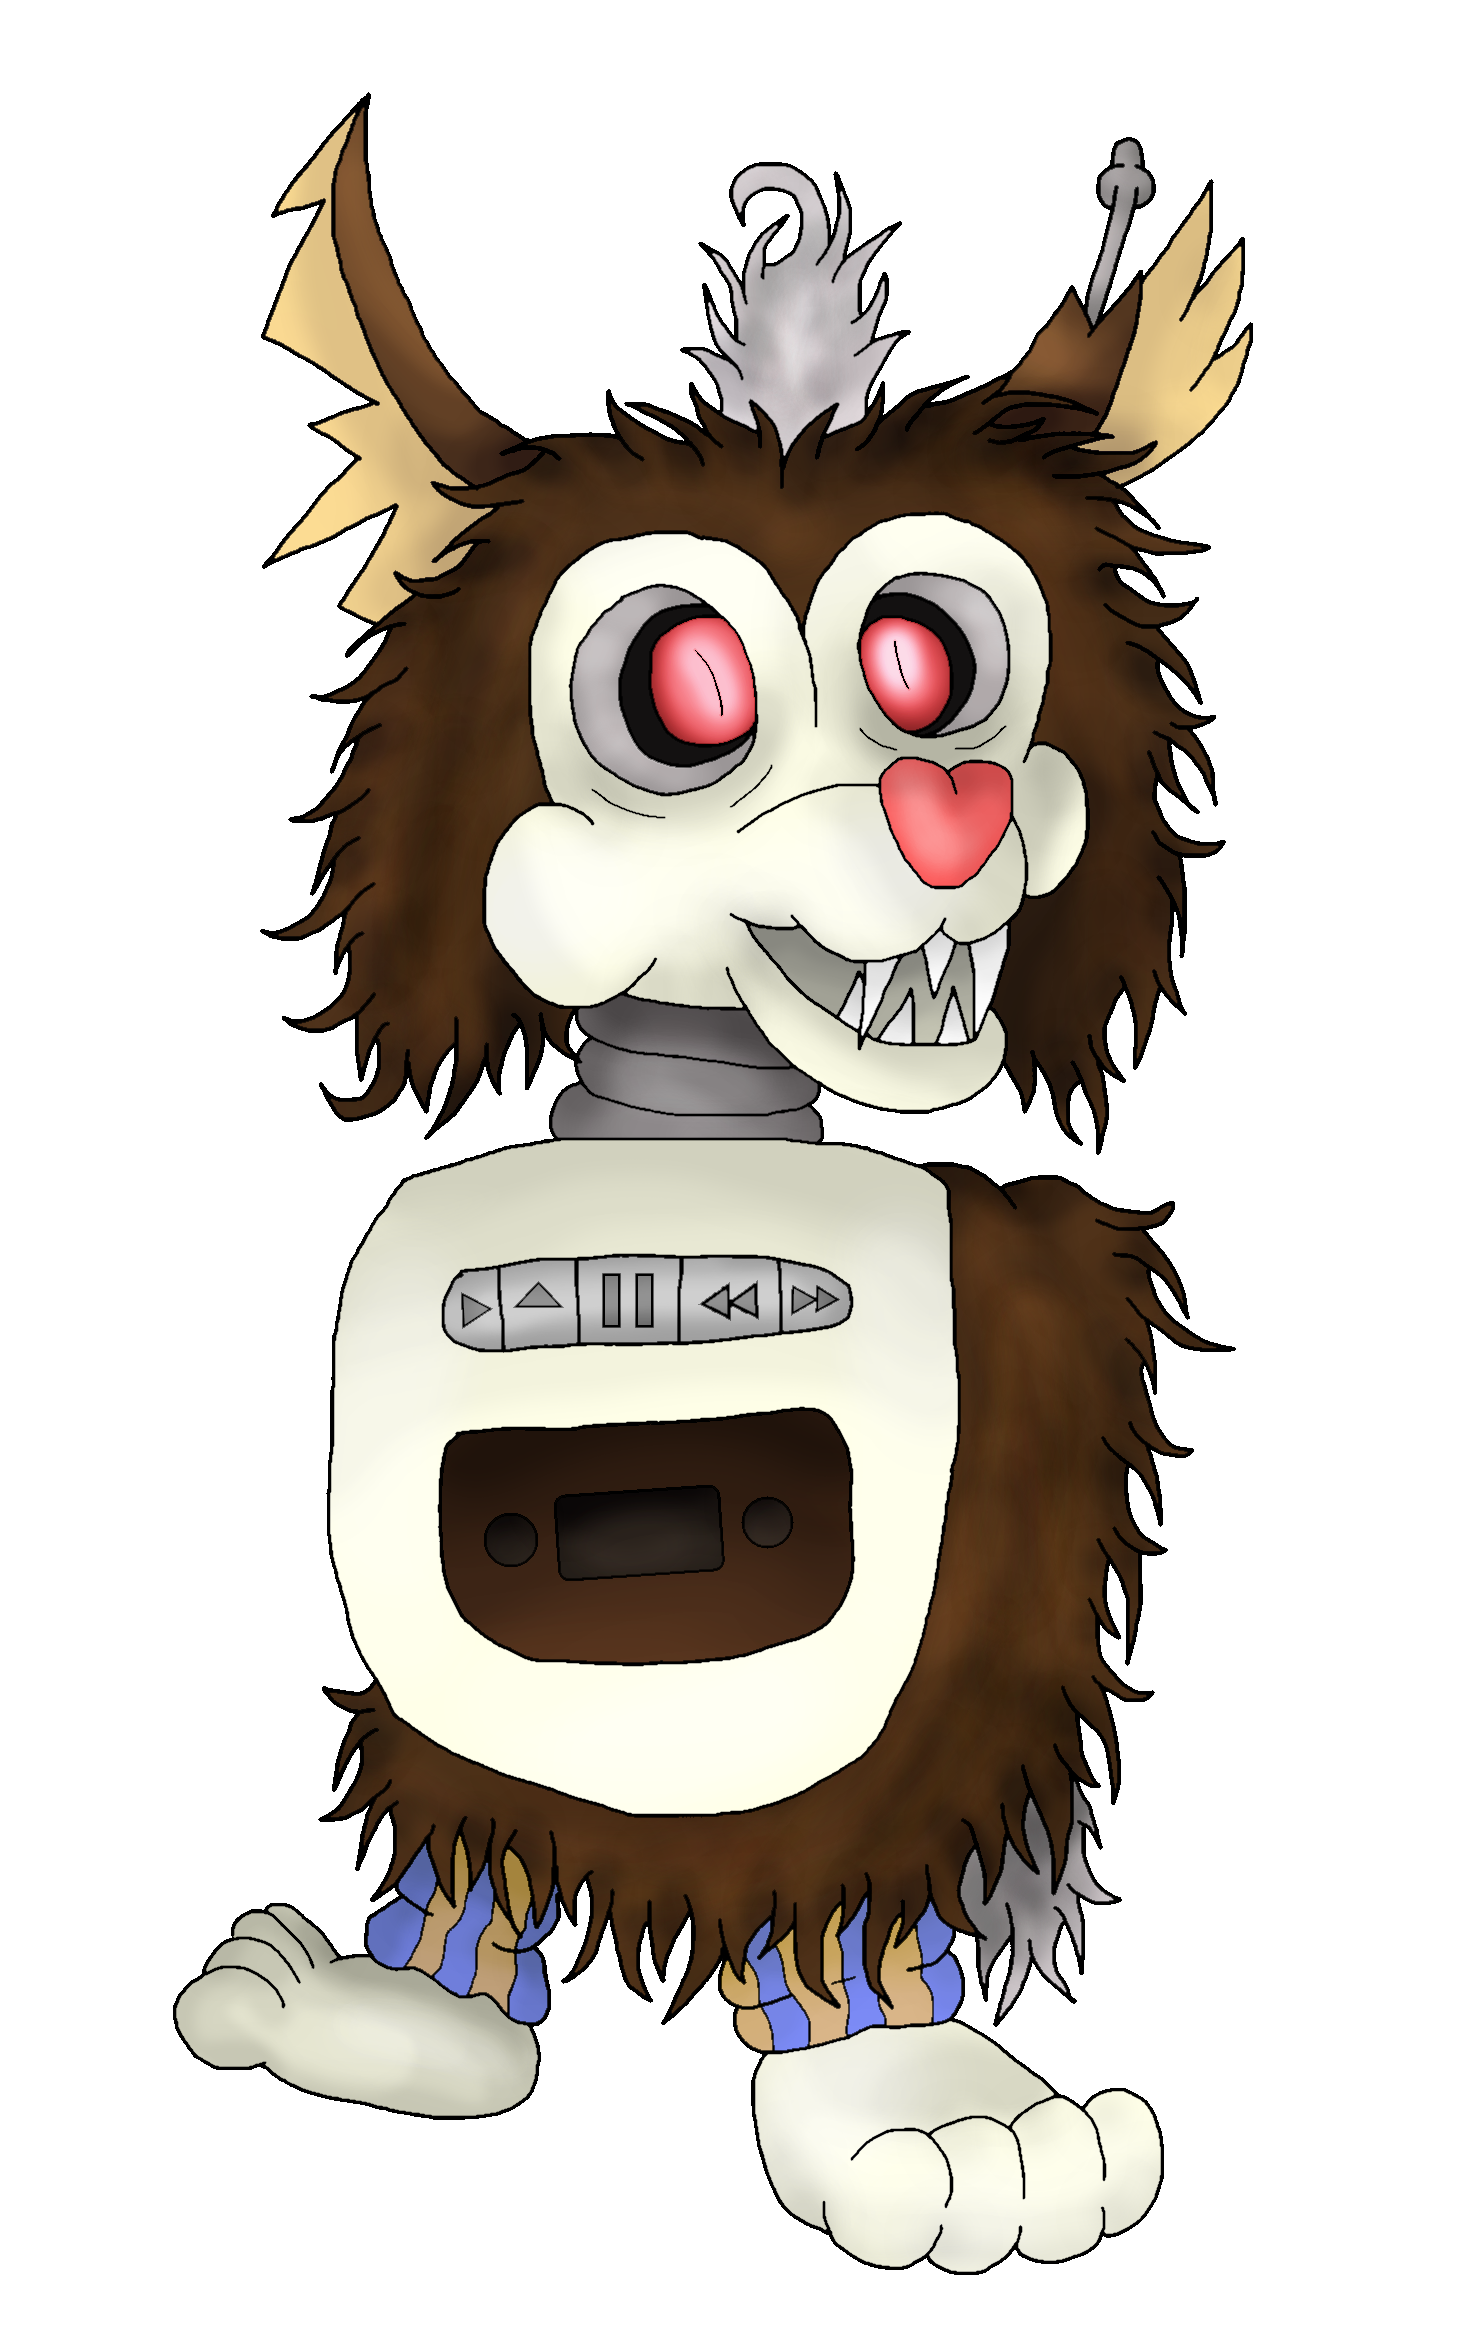 Tattletail drawing 8 bit. Yet another small spew